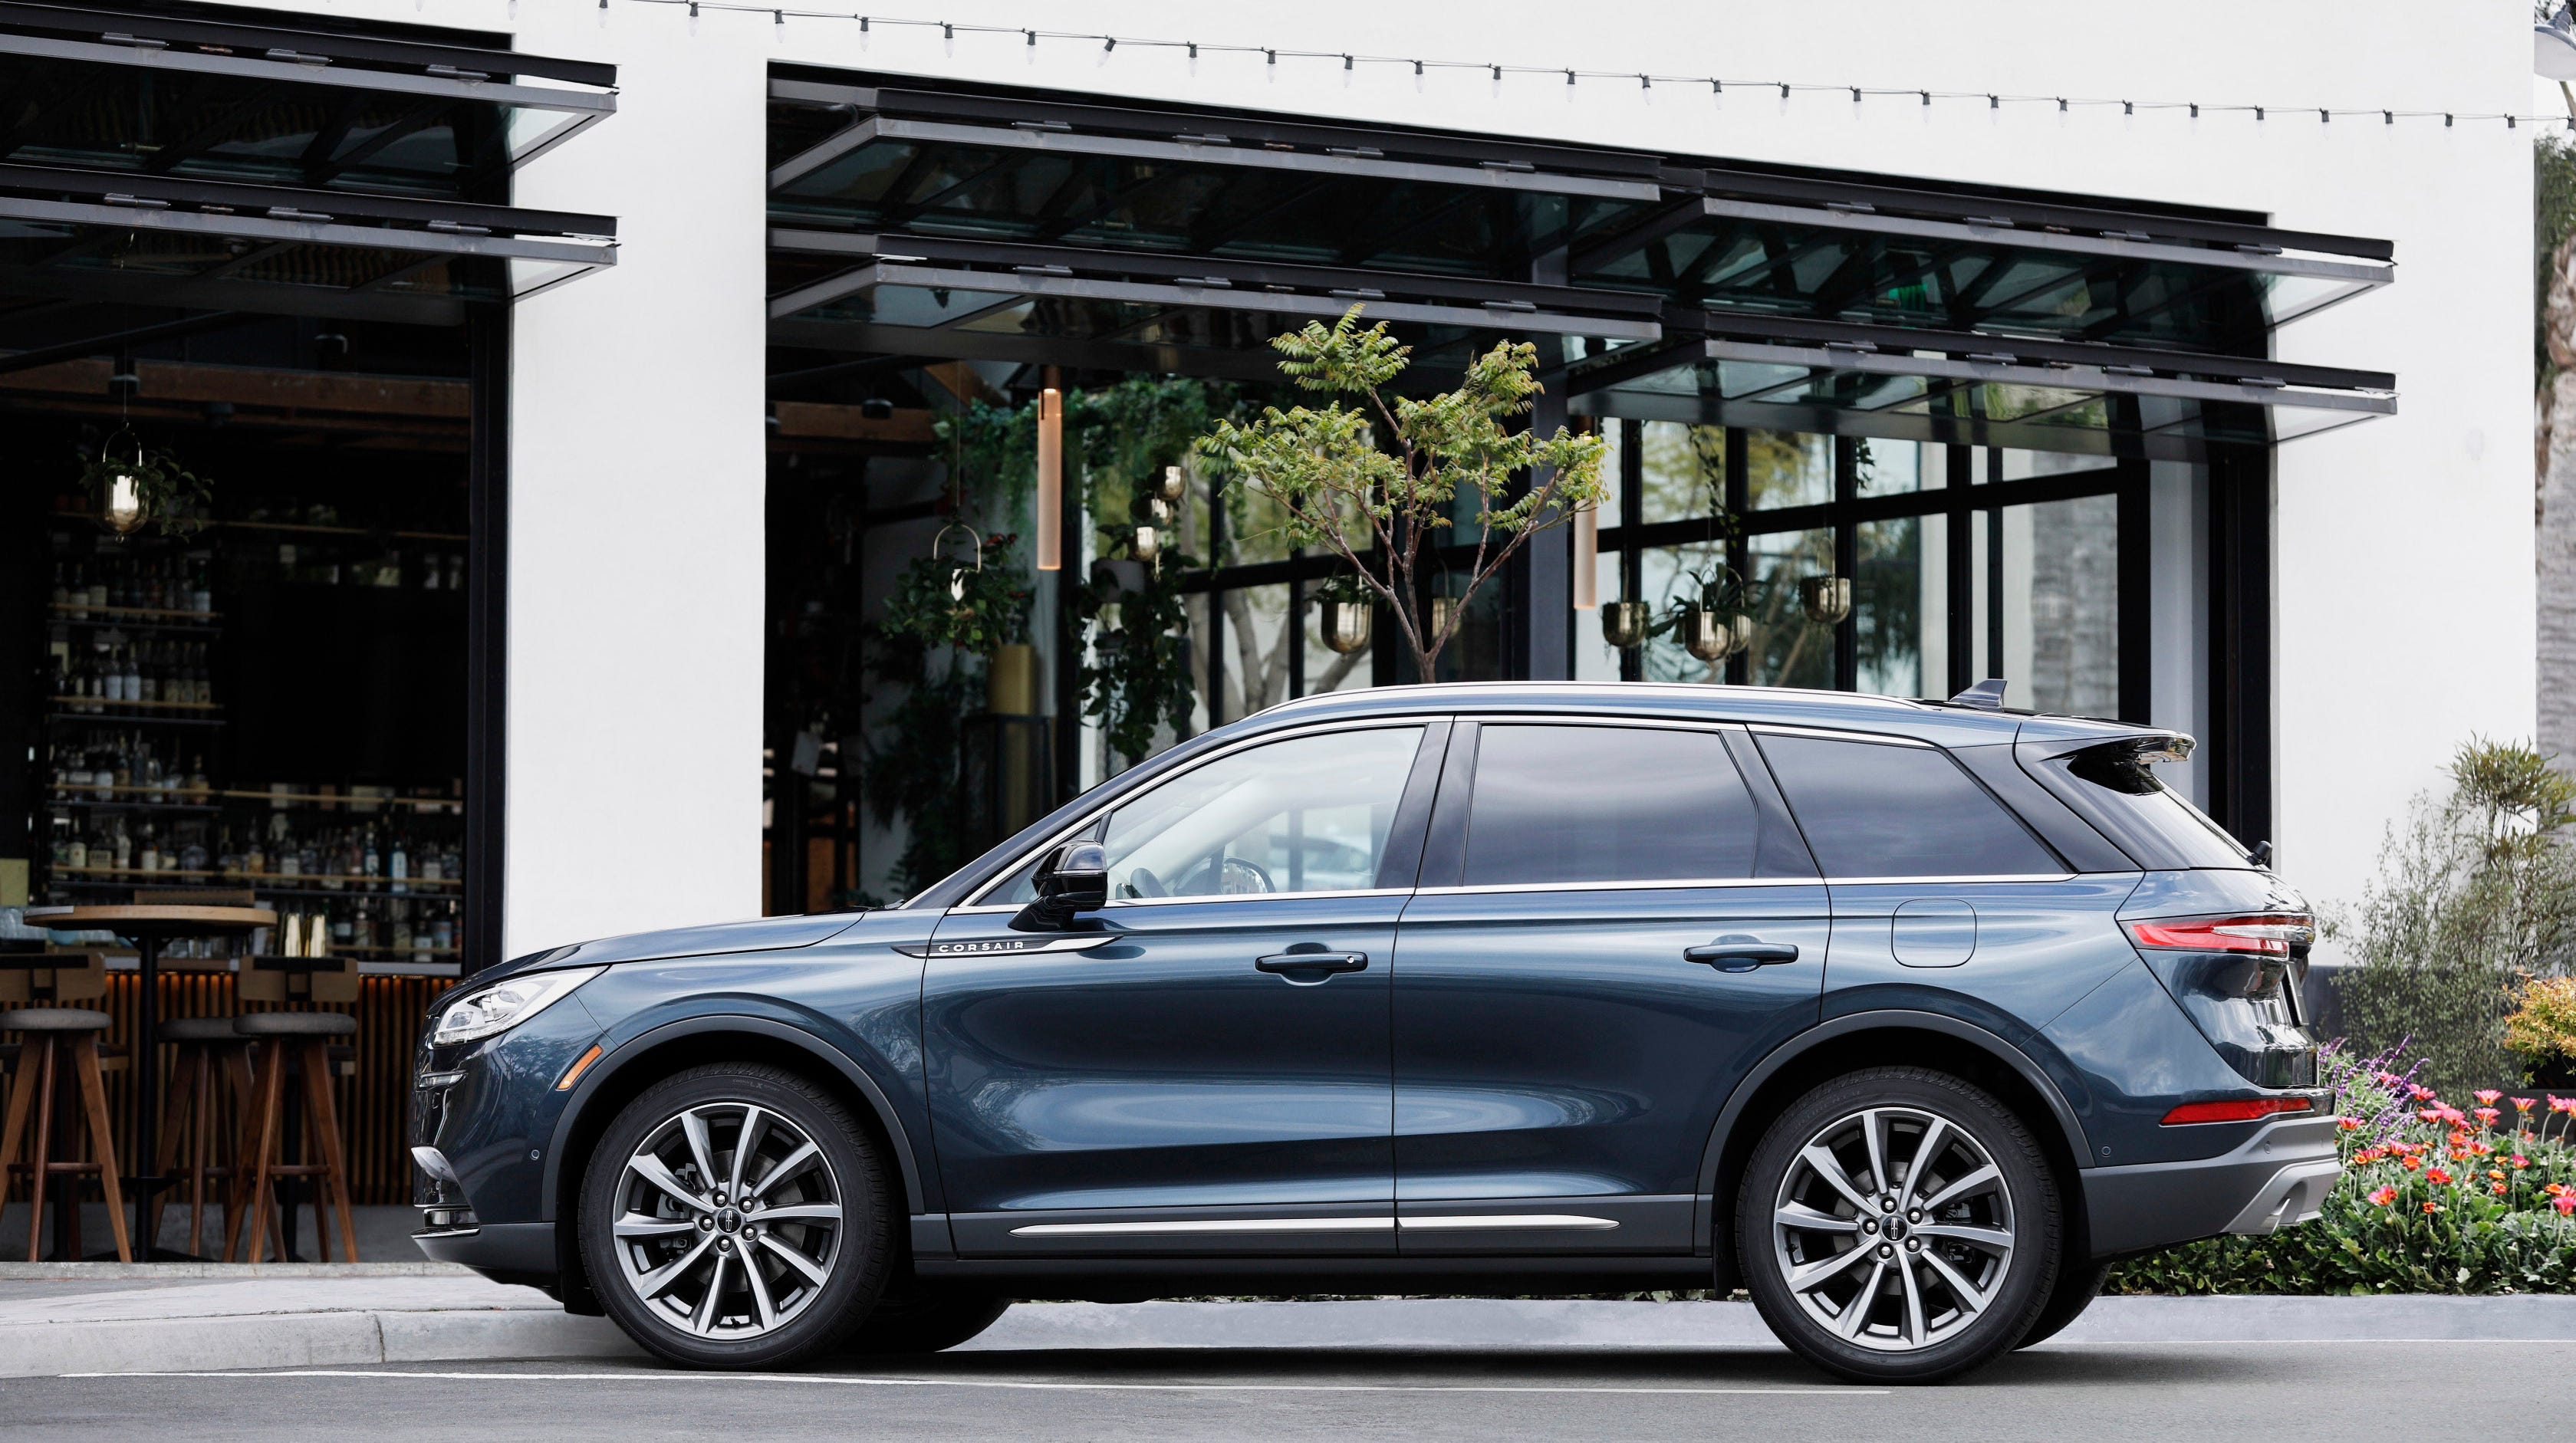 Debuting at the New York auto show, the 2020 Lincoln Corsair compact SUV is aimed at young and female buyers.